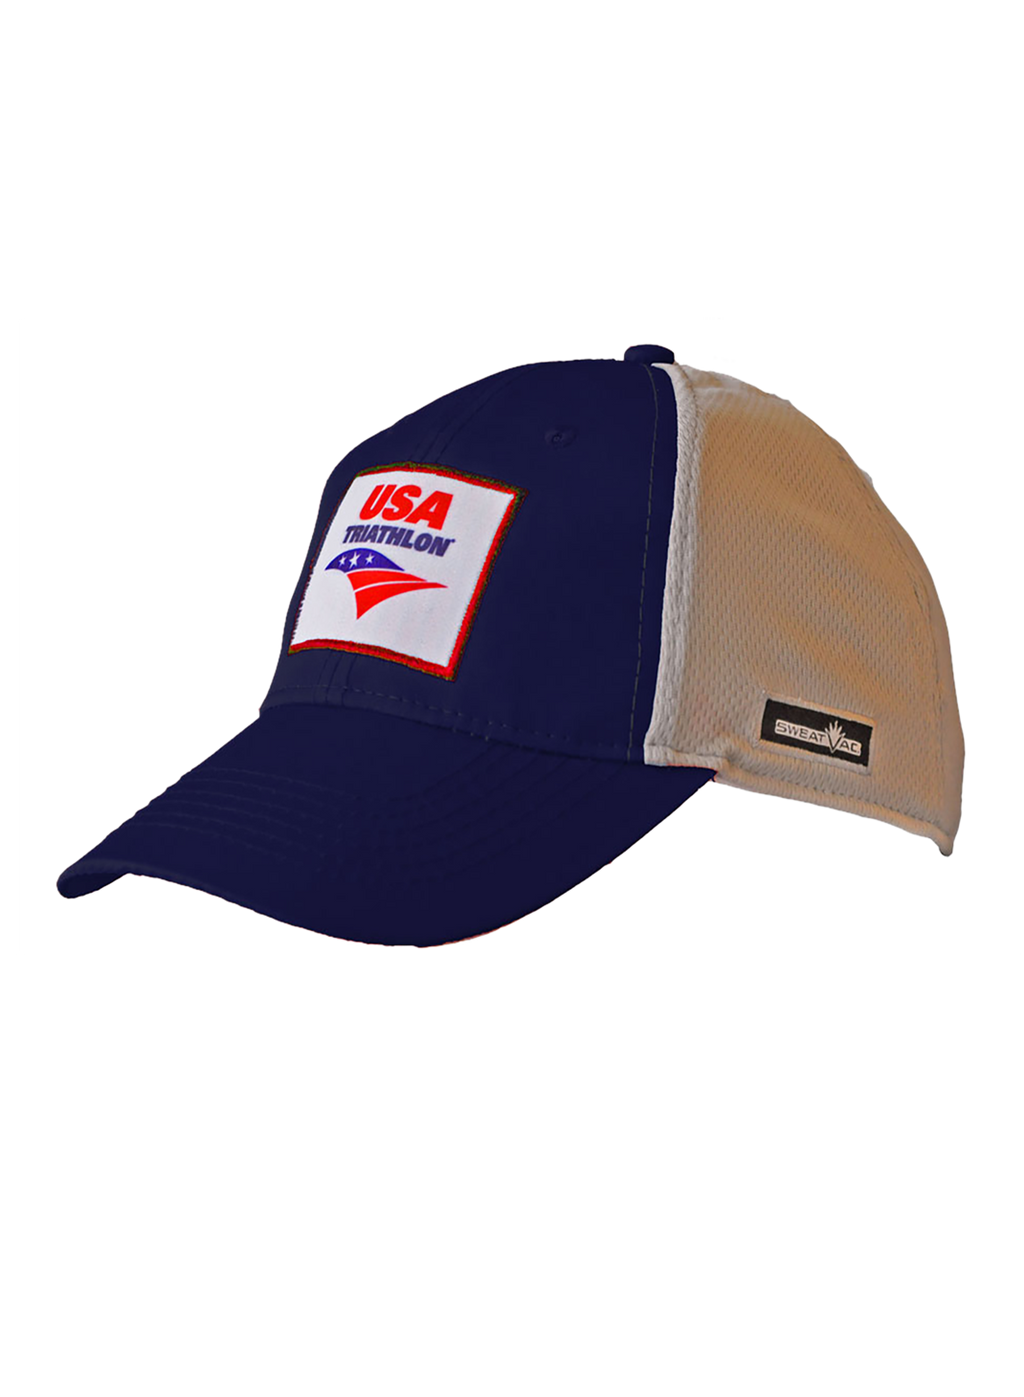 USA Triathlon Techflex Hat